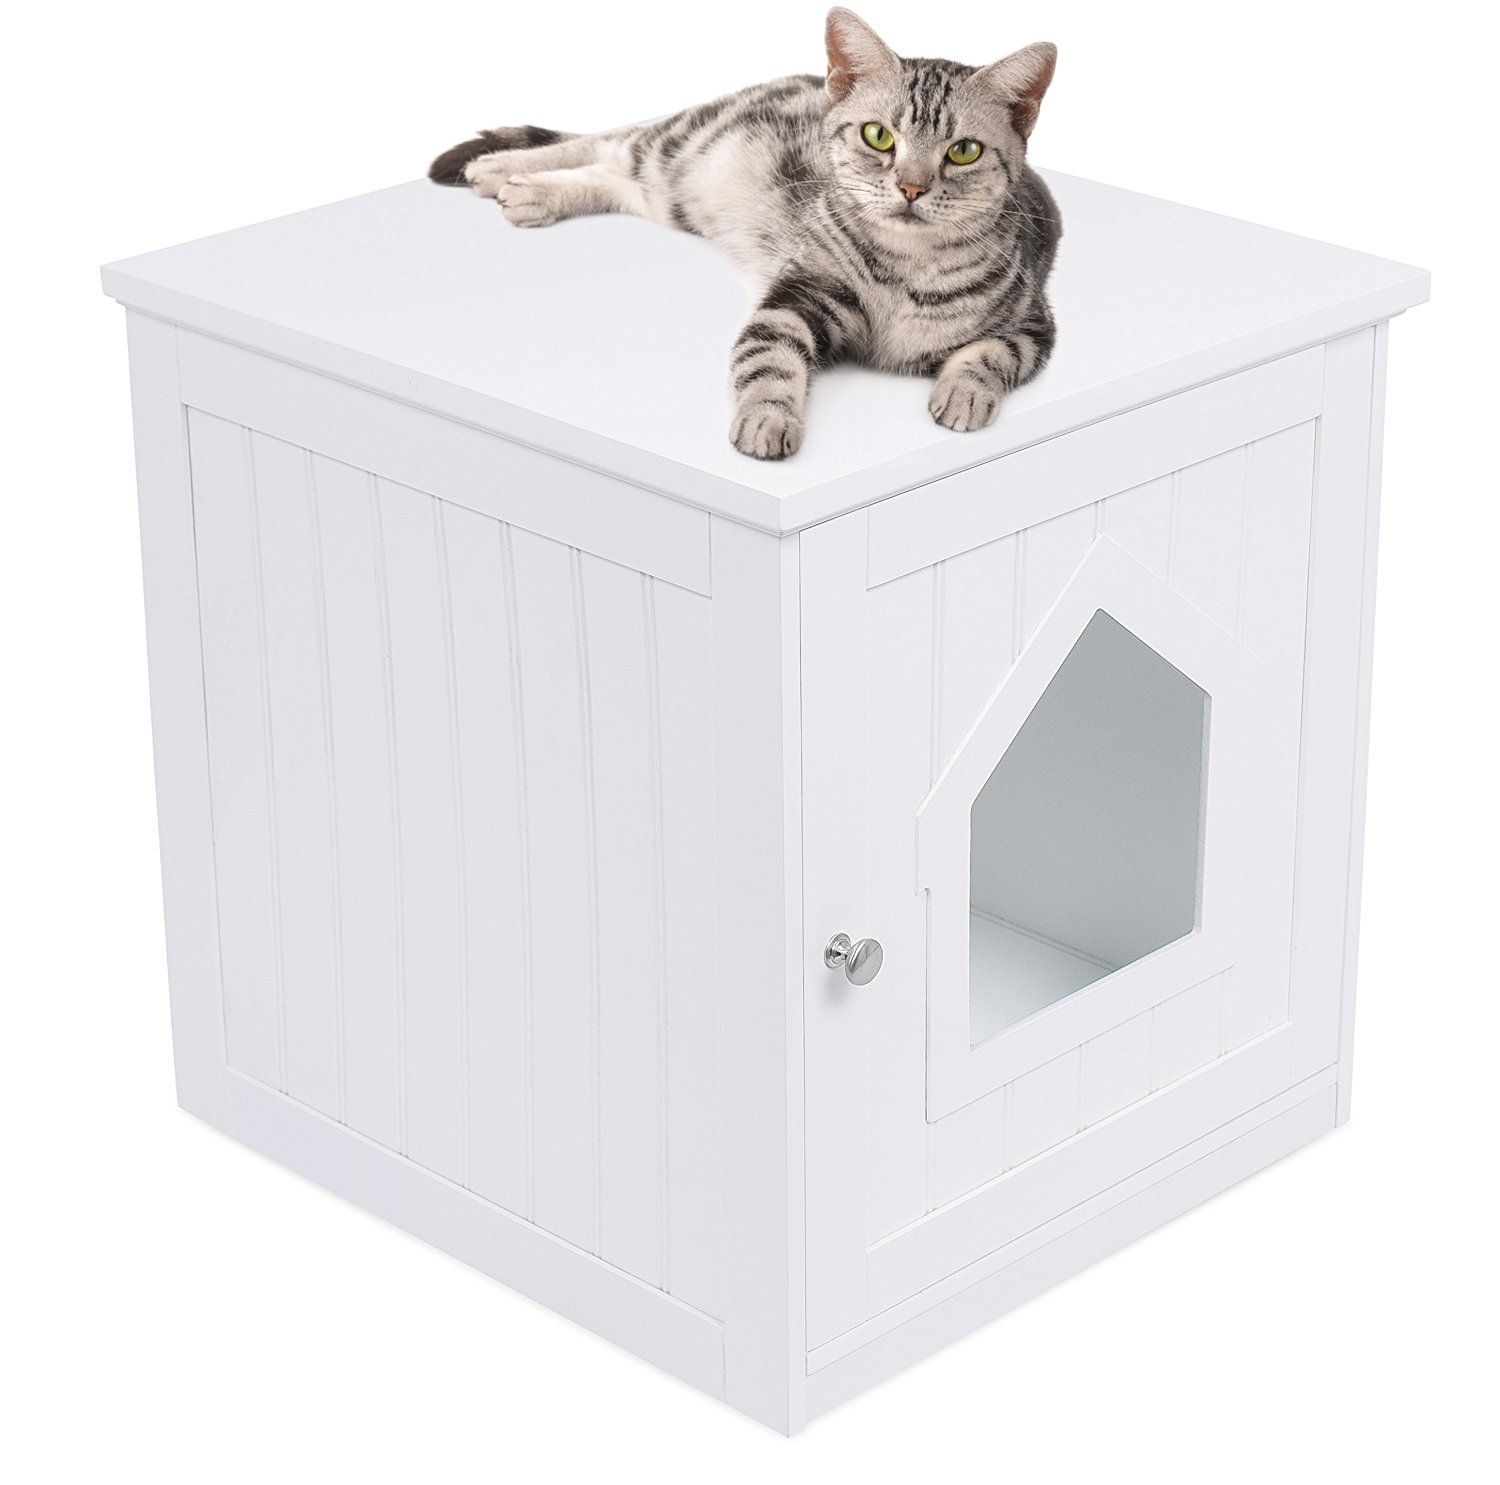 Free Shipping Best Decorative Cat House Side Table Cat Home Nightstand Indoor Pet Crat Litter Box Furniture Litter Box Enclosure Cat Litter Box Furniture